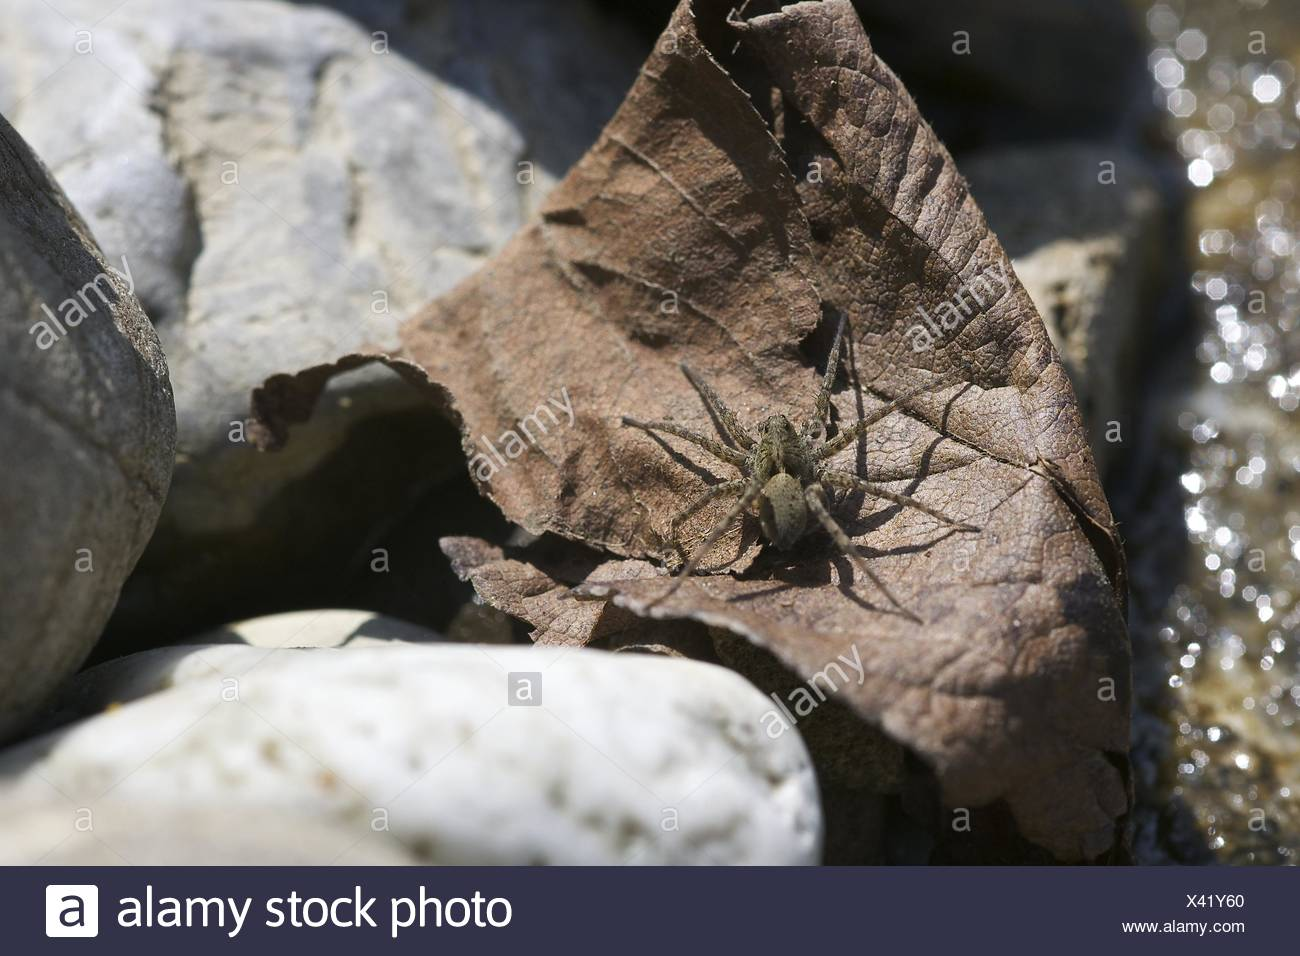 Wolf Spider, Female (Pardosa amentata) - Stock Image